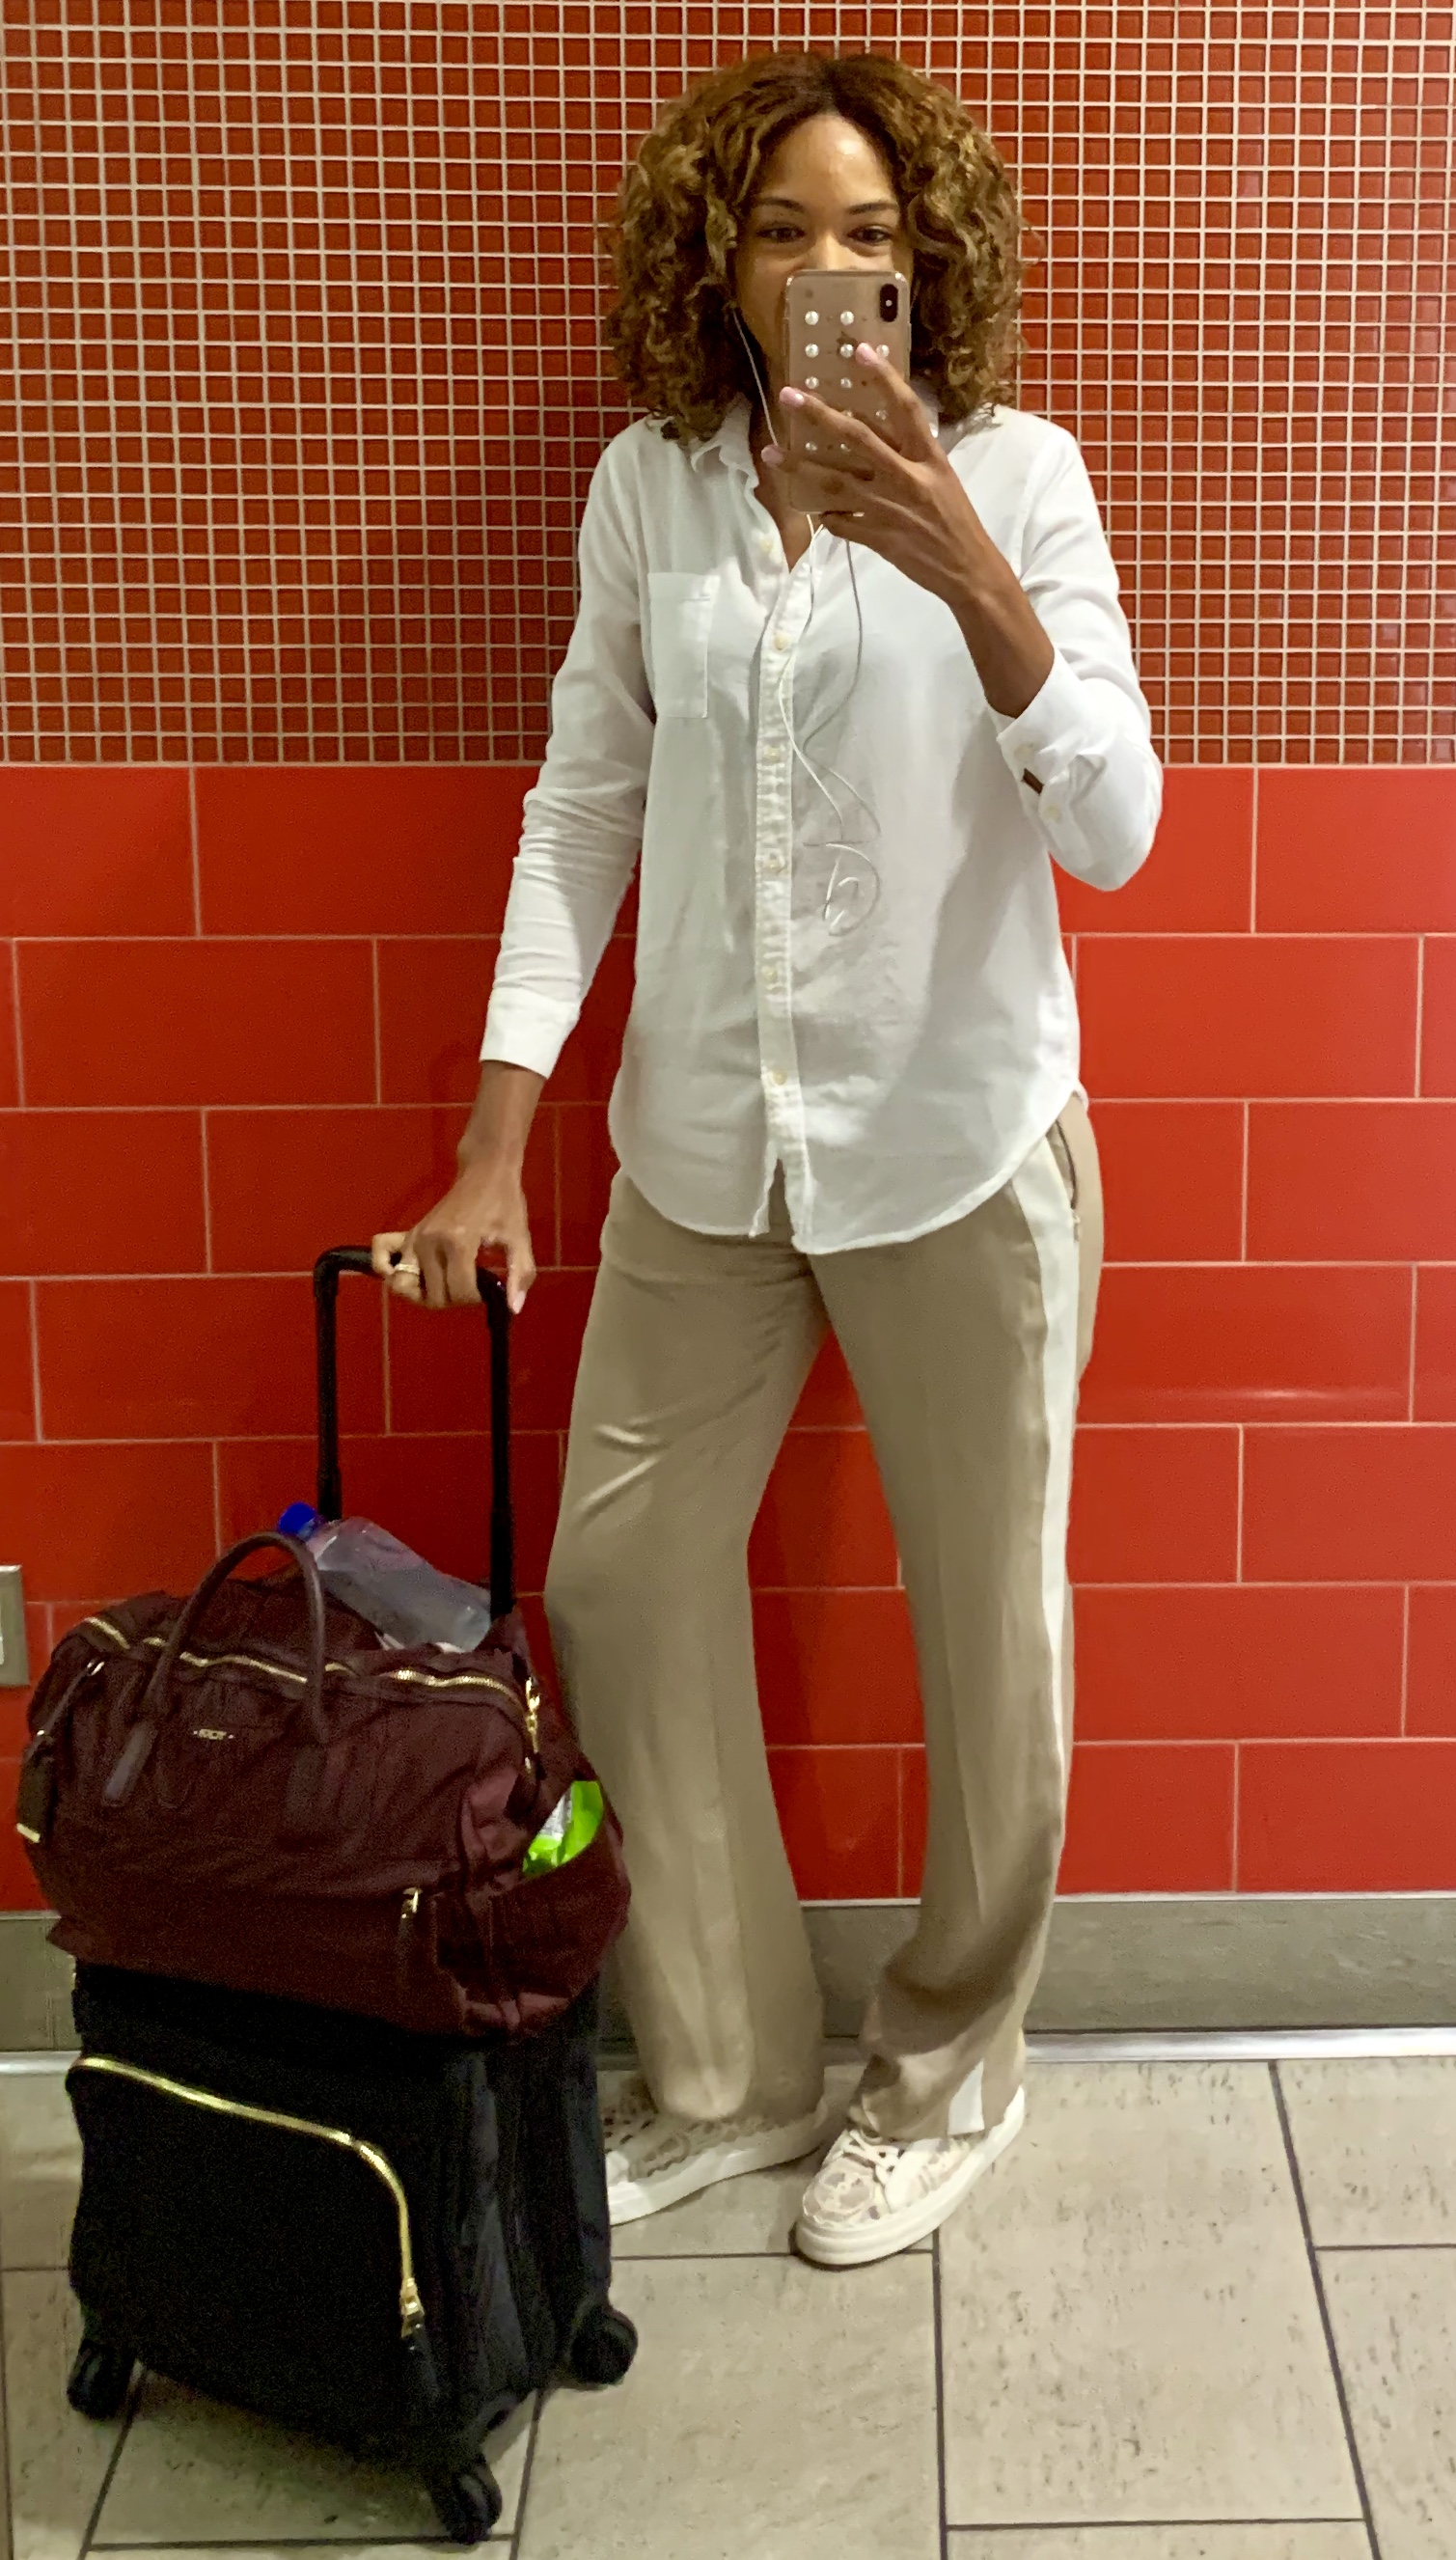 - Track Pants by Theory - linked: hereShoes from Chloe - linked: hereLuggage Tumi - Voyageaur Osona Carry-on : here and Voyageur Sheryl Business Tote - here